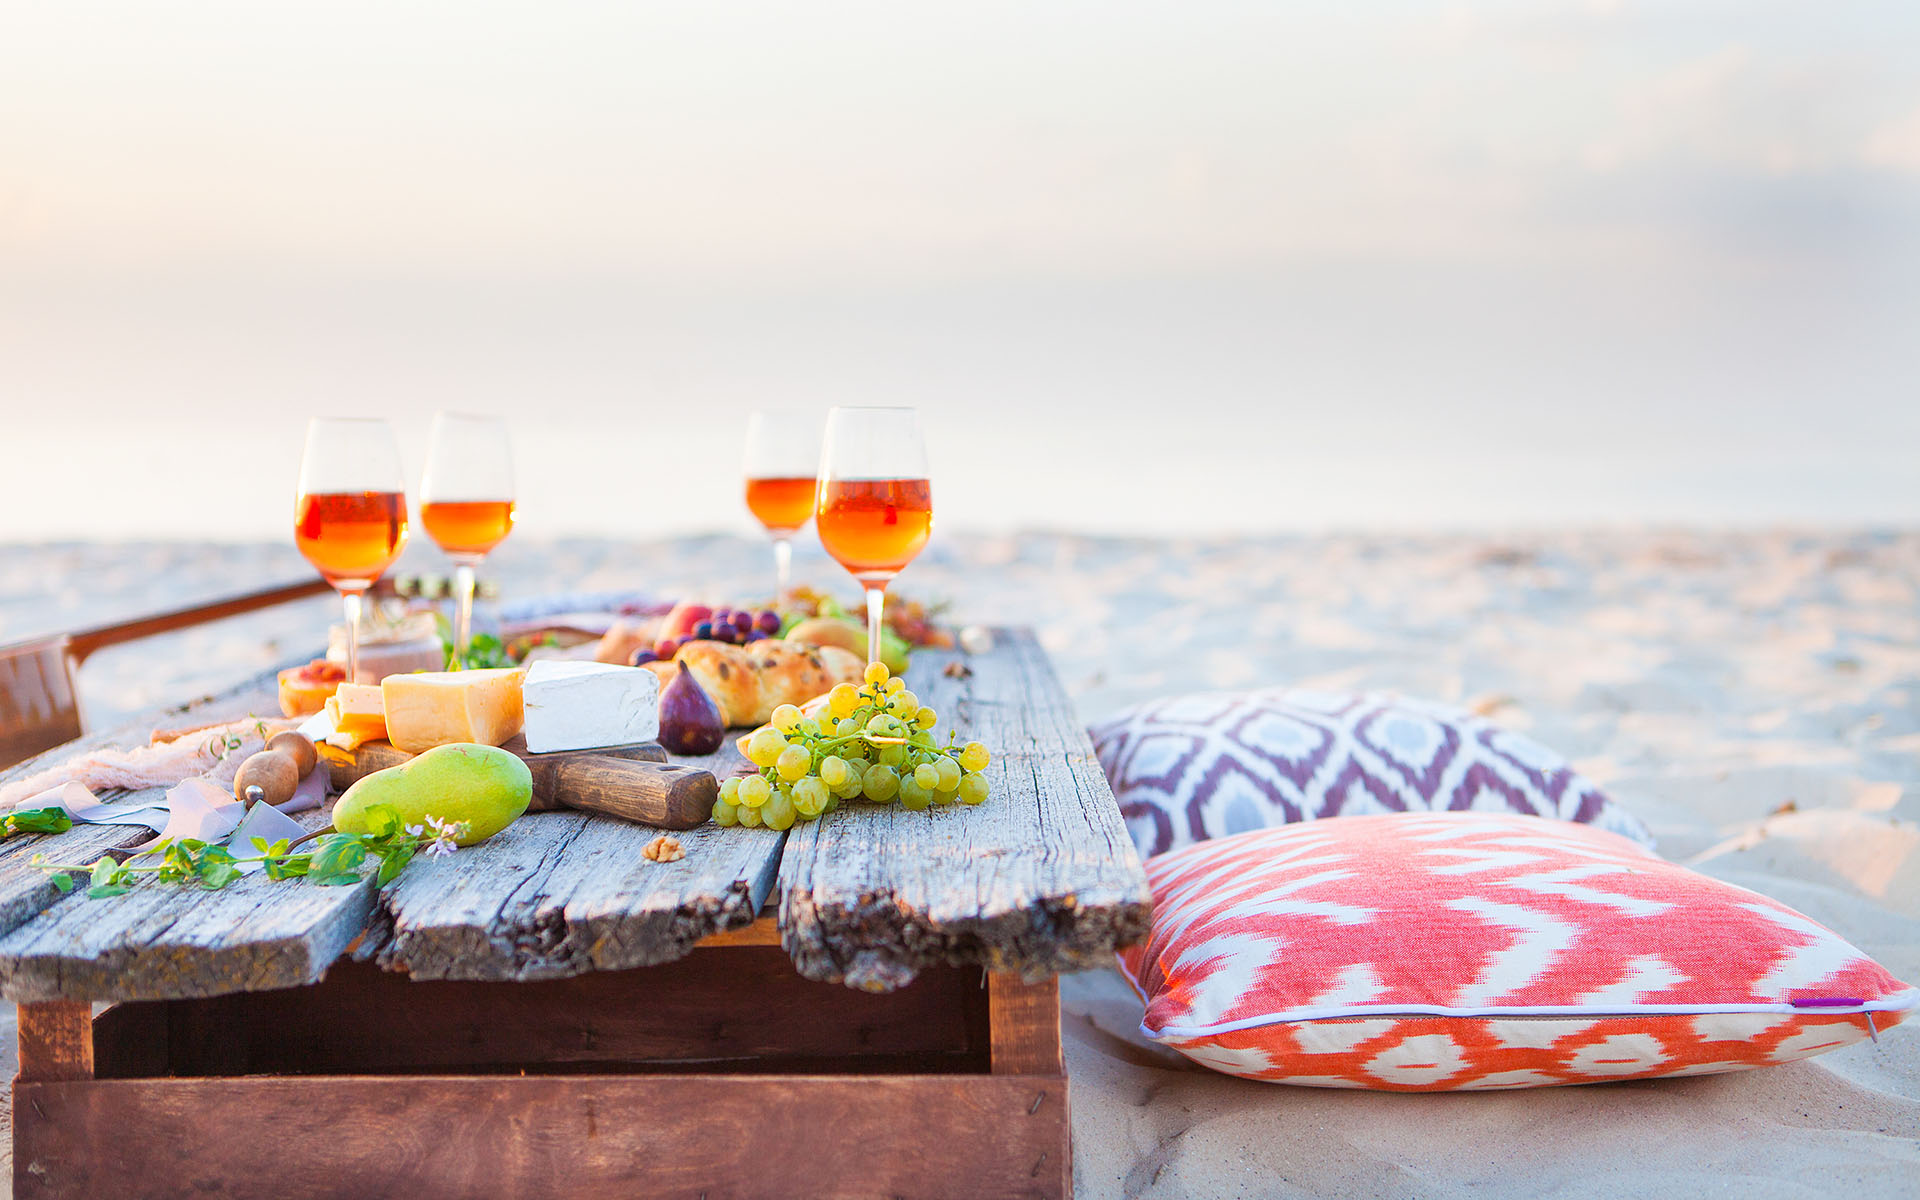 wine-plus-beach-picknick